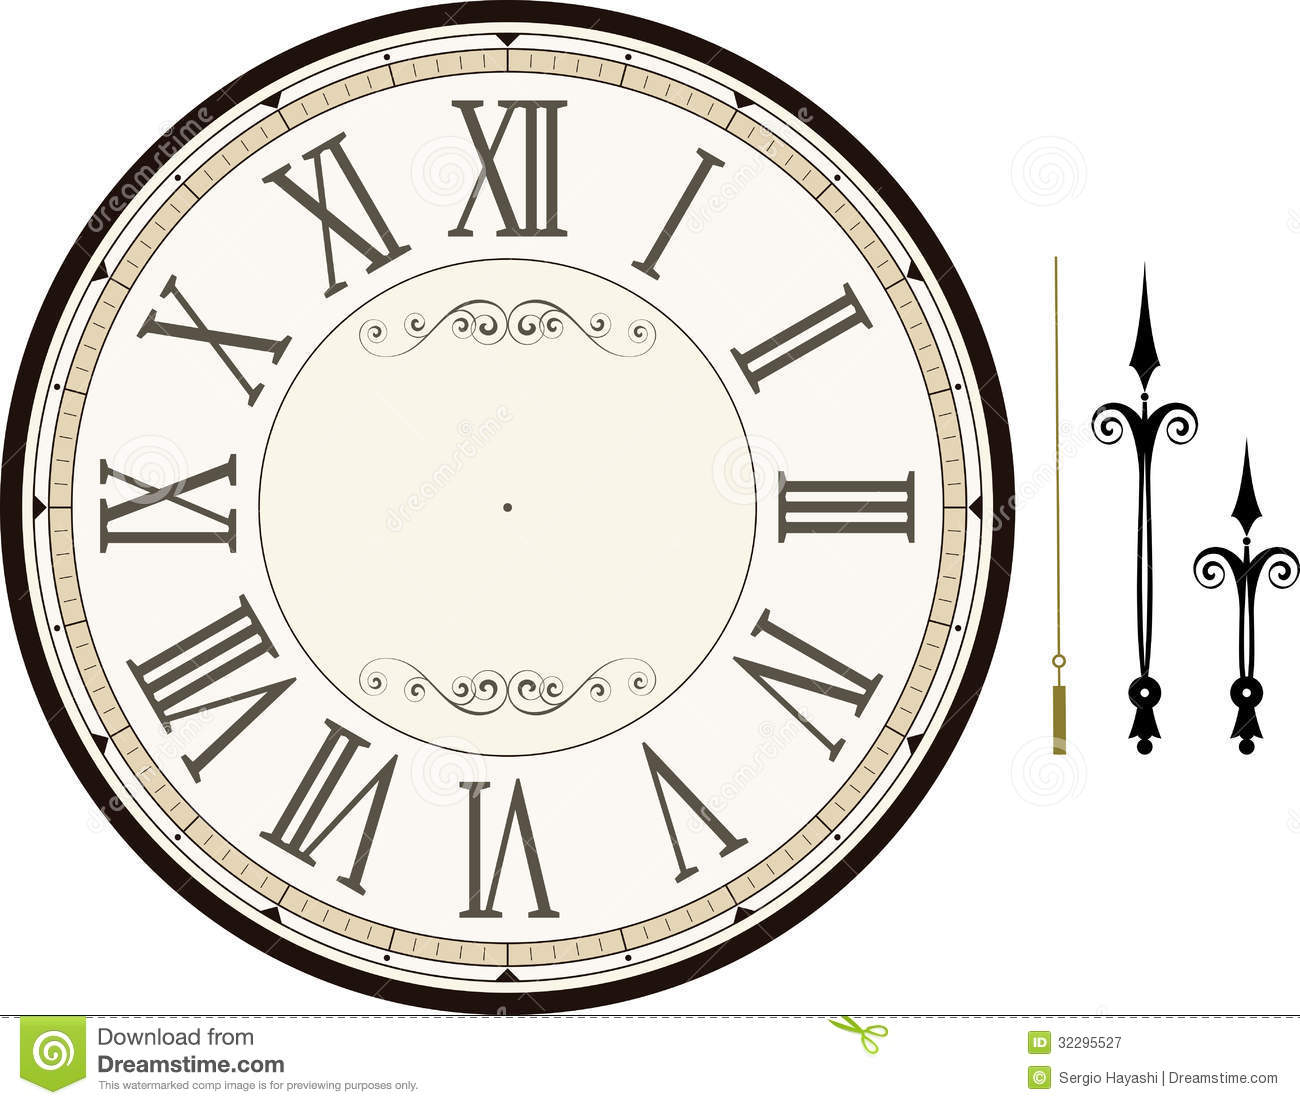 Vintage clock face template with hour, minute and second hands to make ...